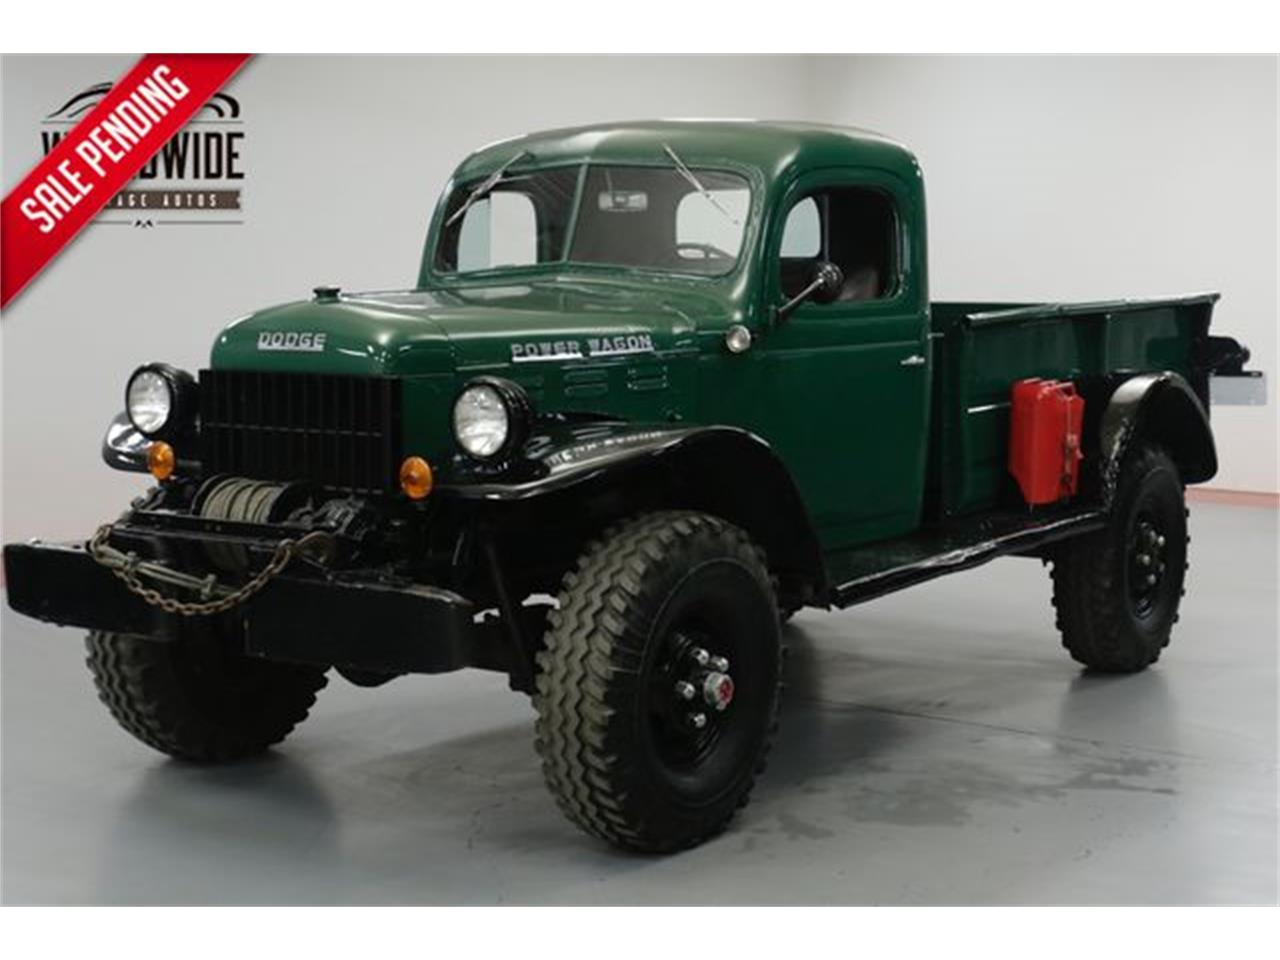 dodge power wagon for sale upcoming new car release 20201955 Dodge Dodge Trucks Dodge Power Wagon Fr Dodge Jack Trucks #12